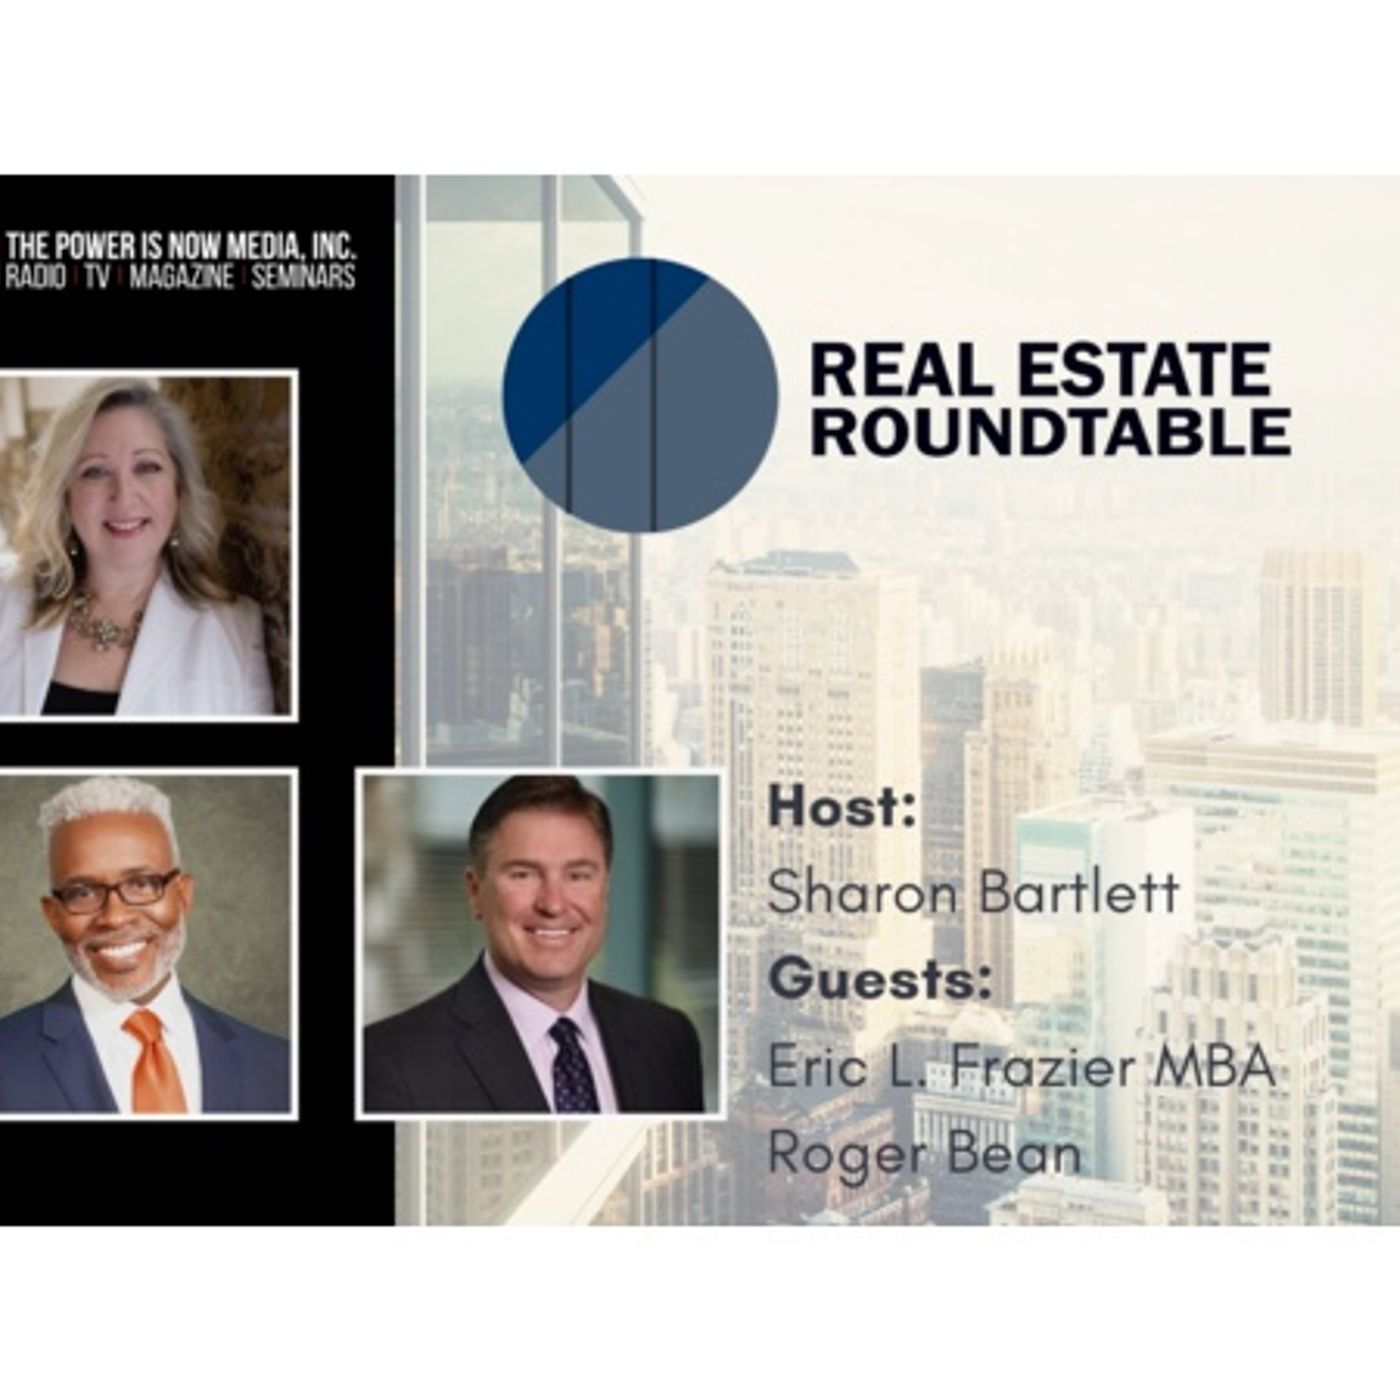 Real Estate Roundtable with Roger Beane